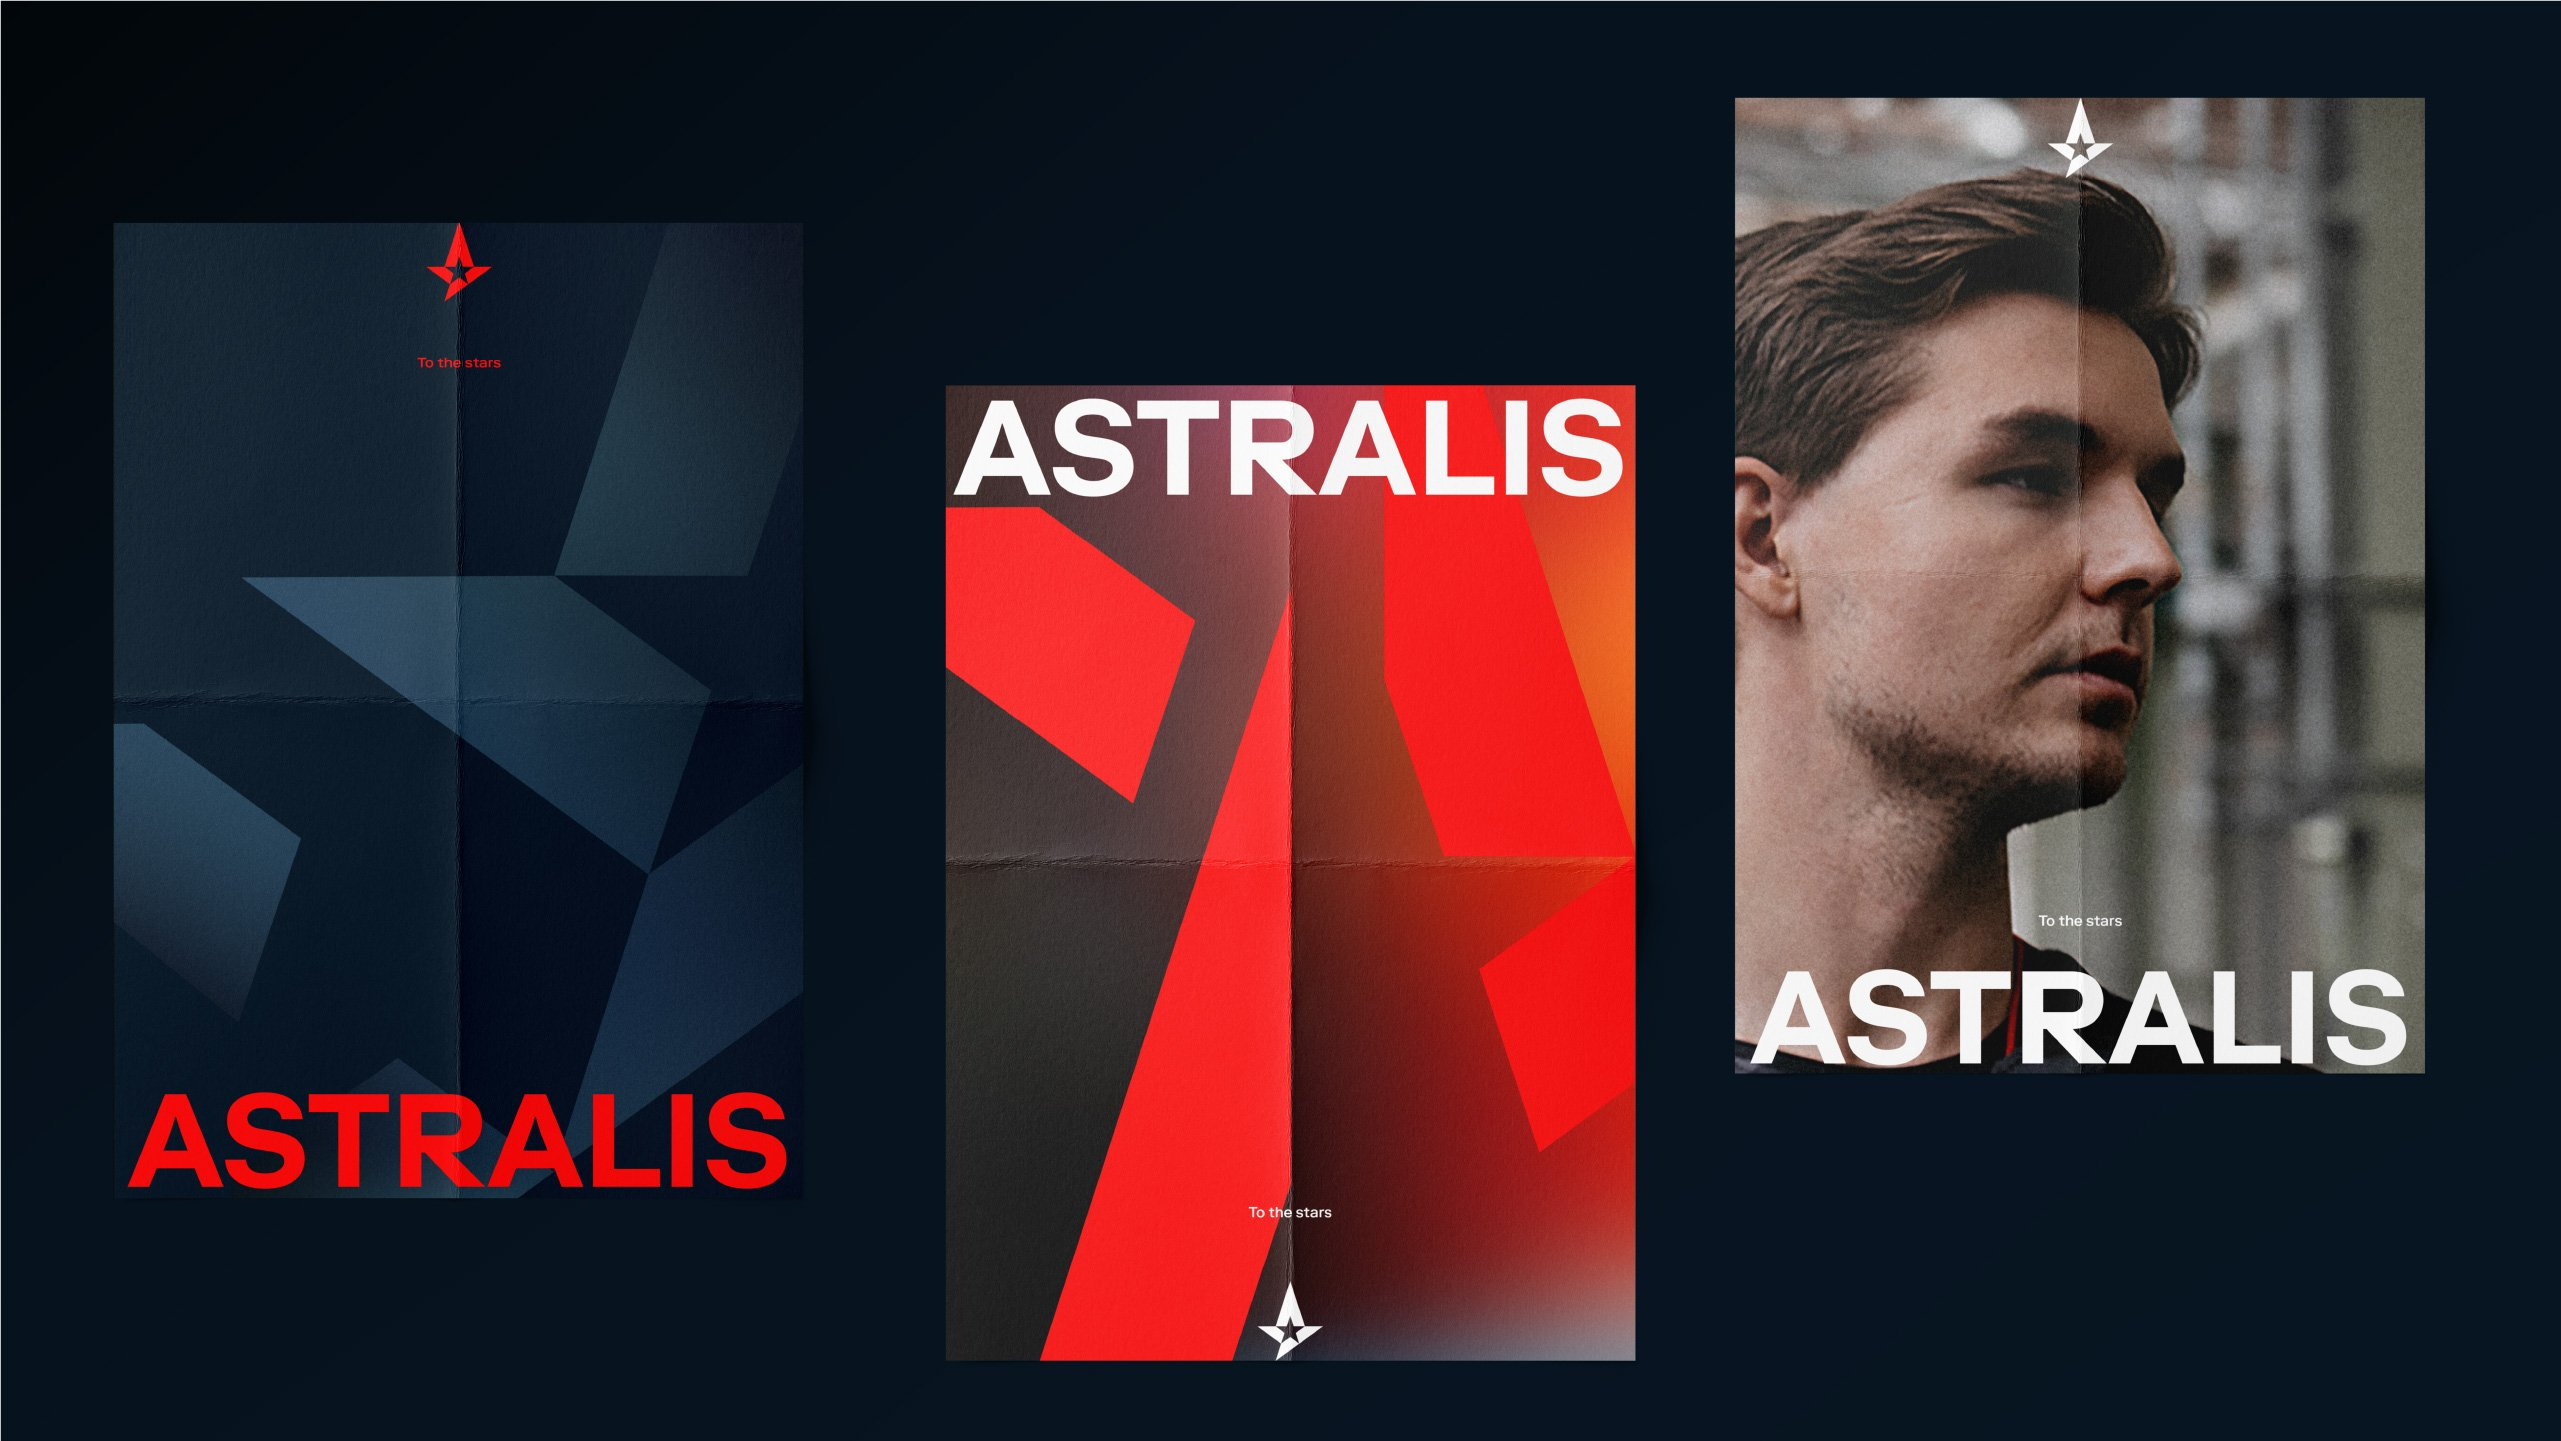 ASTRALIS-PHOTO-posters-v2-80